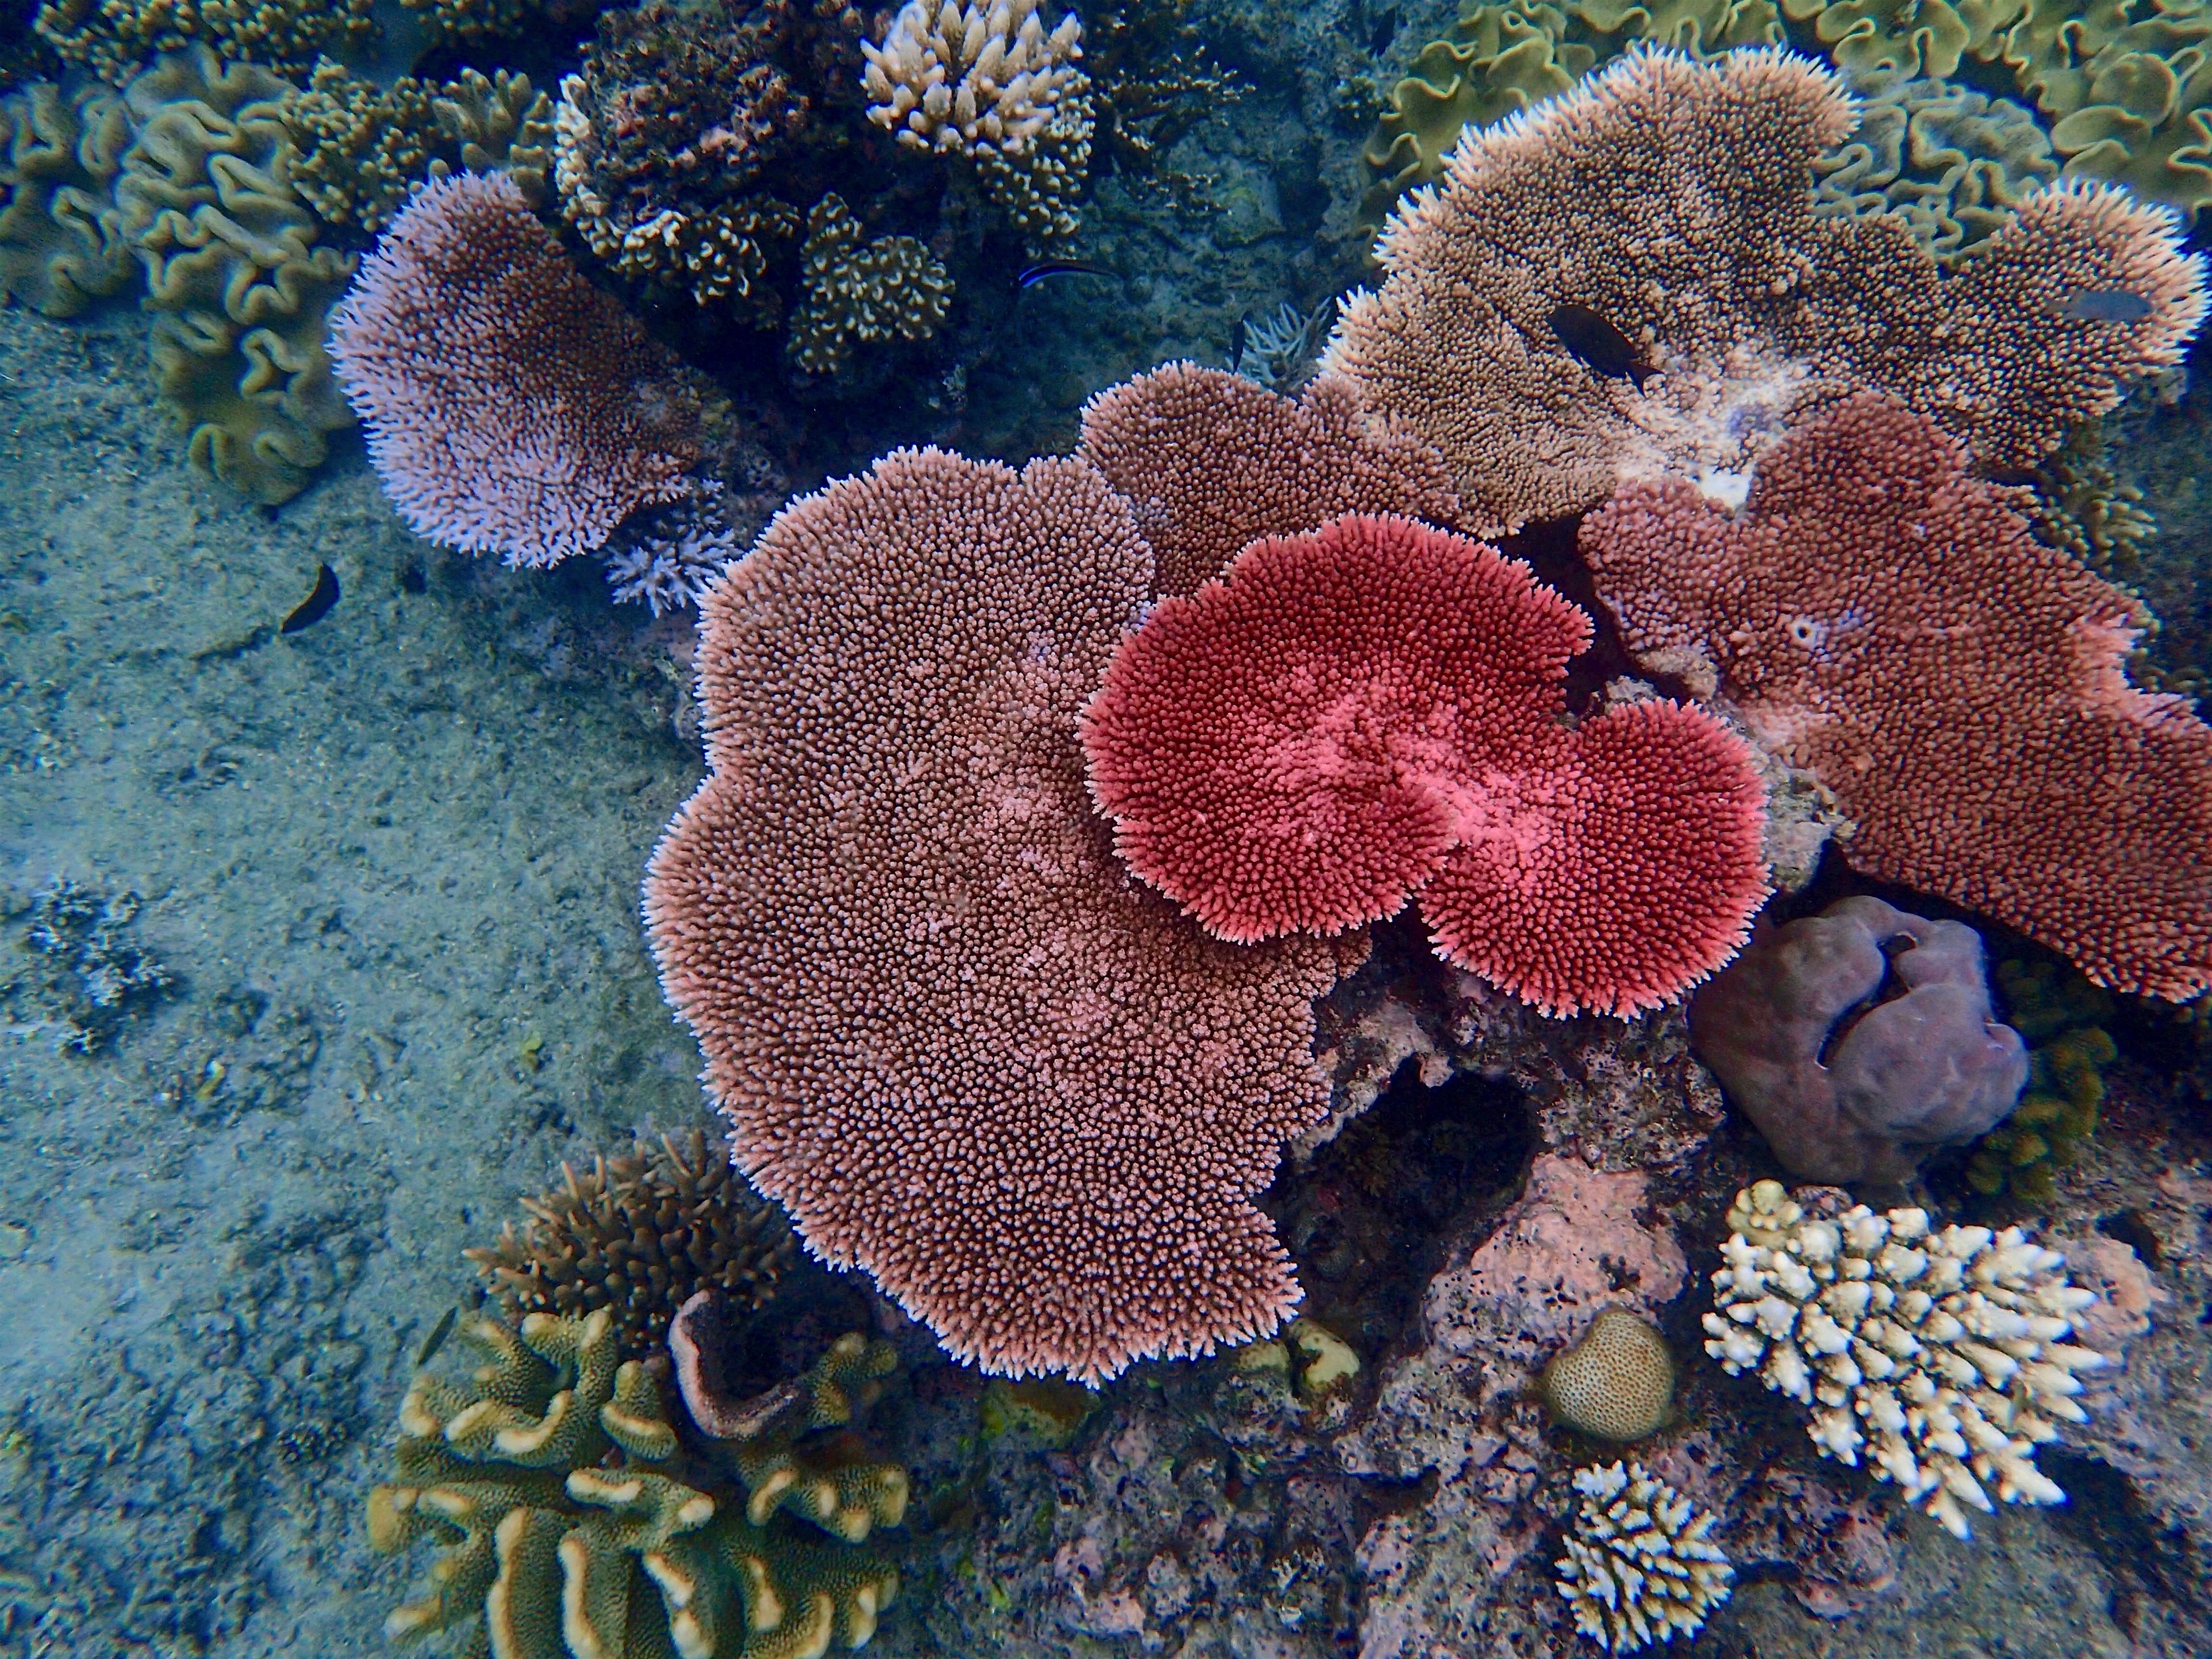 an overview of the great barrier reef The great barrier reef is a site of remarkable variety and beauty on the north-east coast of australia it contains the world's largest collection of coral reefs, with 400 types of coral, 1,500 species of fish and 4,000 types of mollusc.